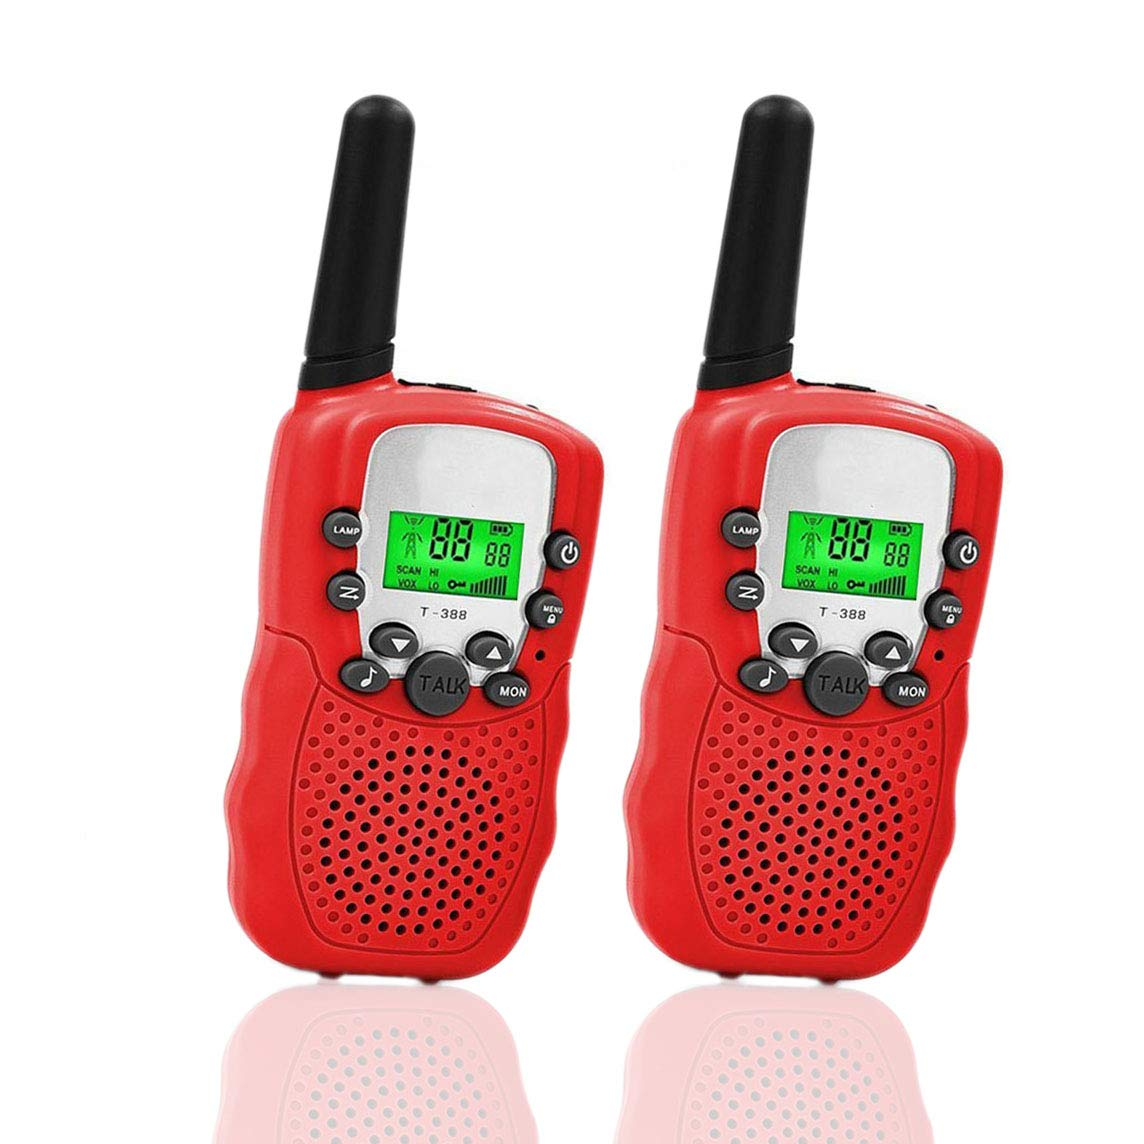 Amazon Happy Gift Toys For 7 8 Year Old BoysLong Range Kids Walkies Talkies Outdoor Travel Hunting Boy Gifts Age 3 12 GirlsGifts 12Red